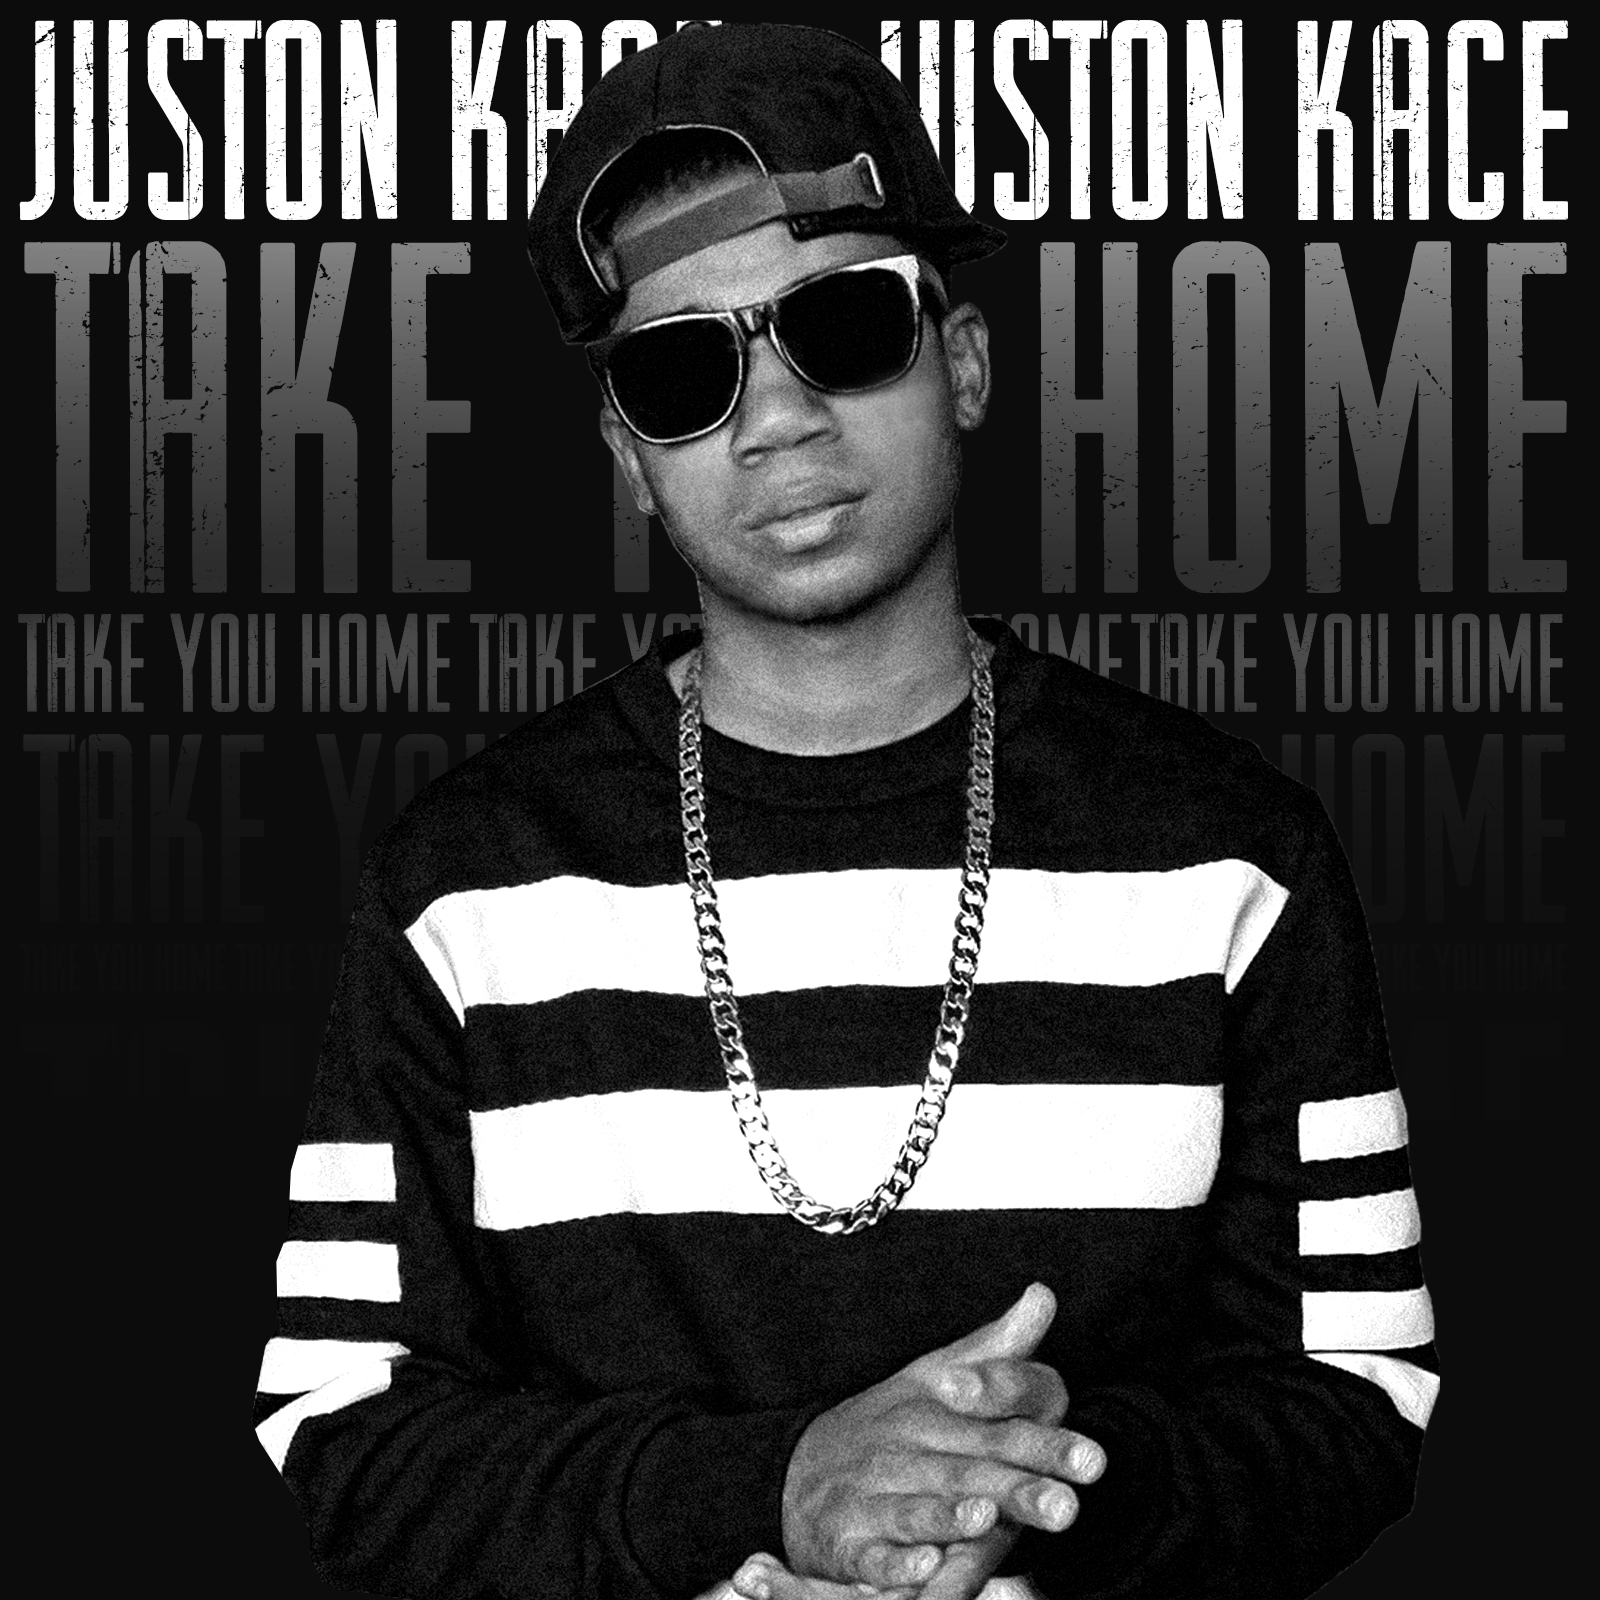 juston kace take me home cover.jpg